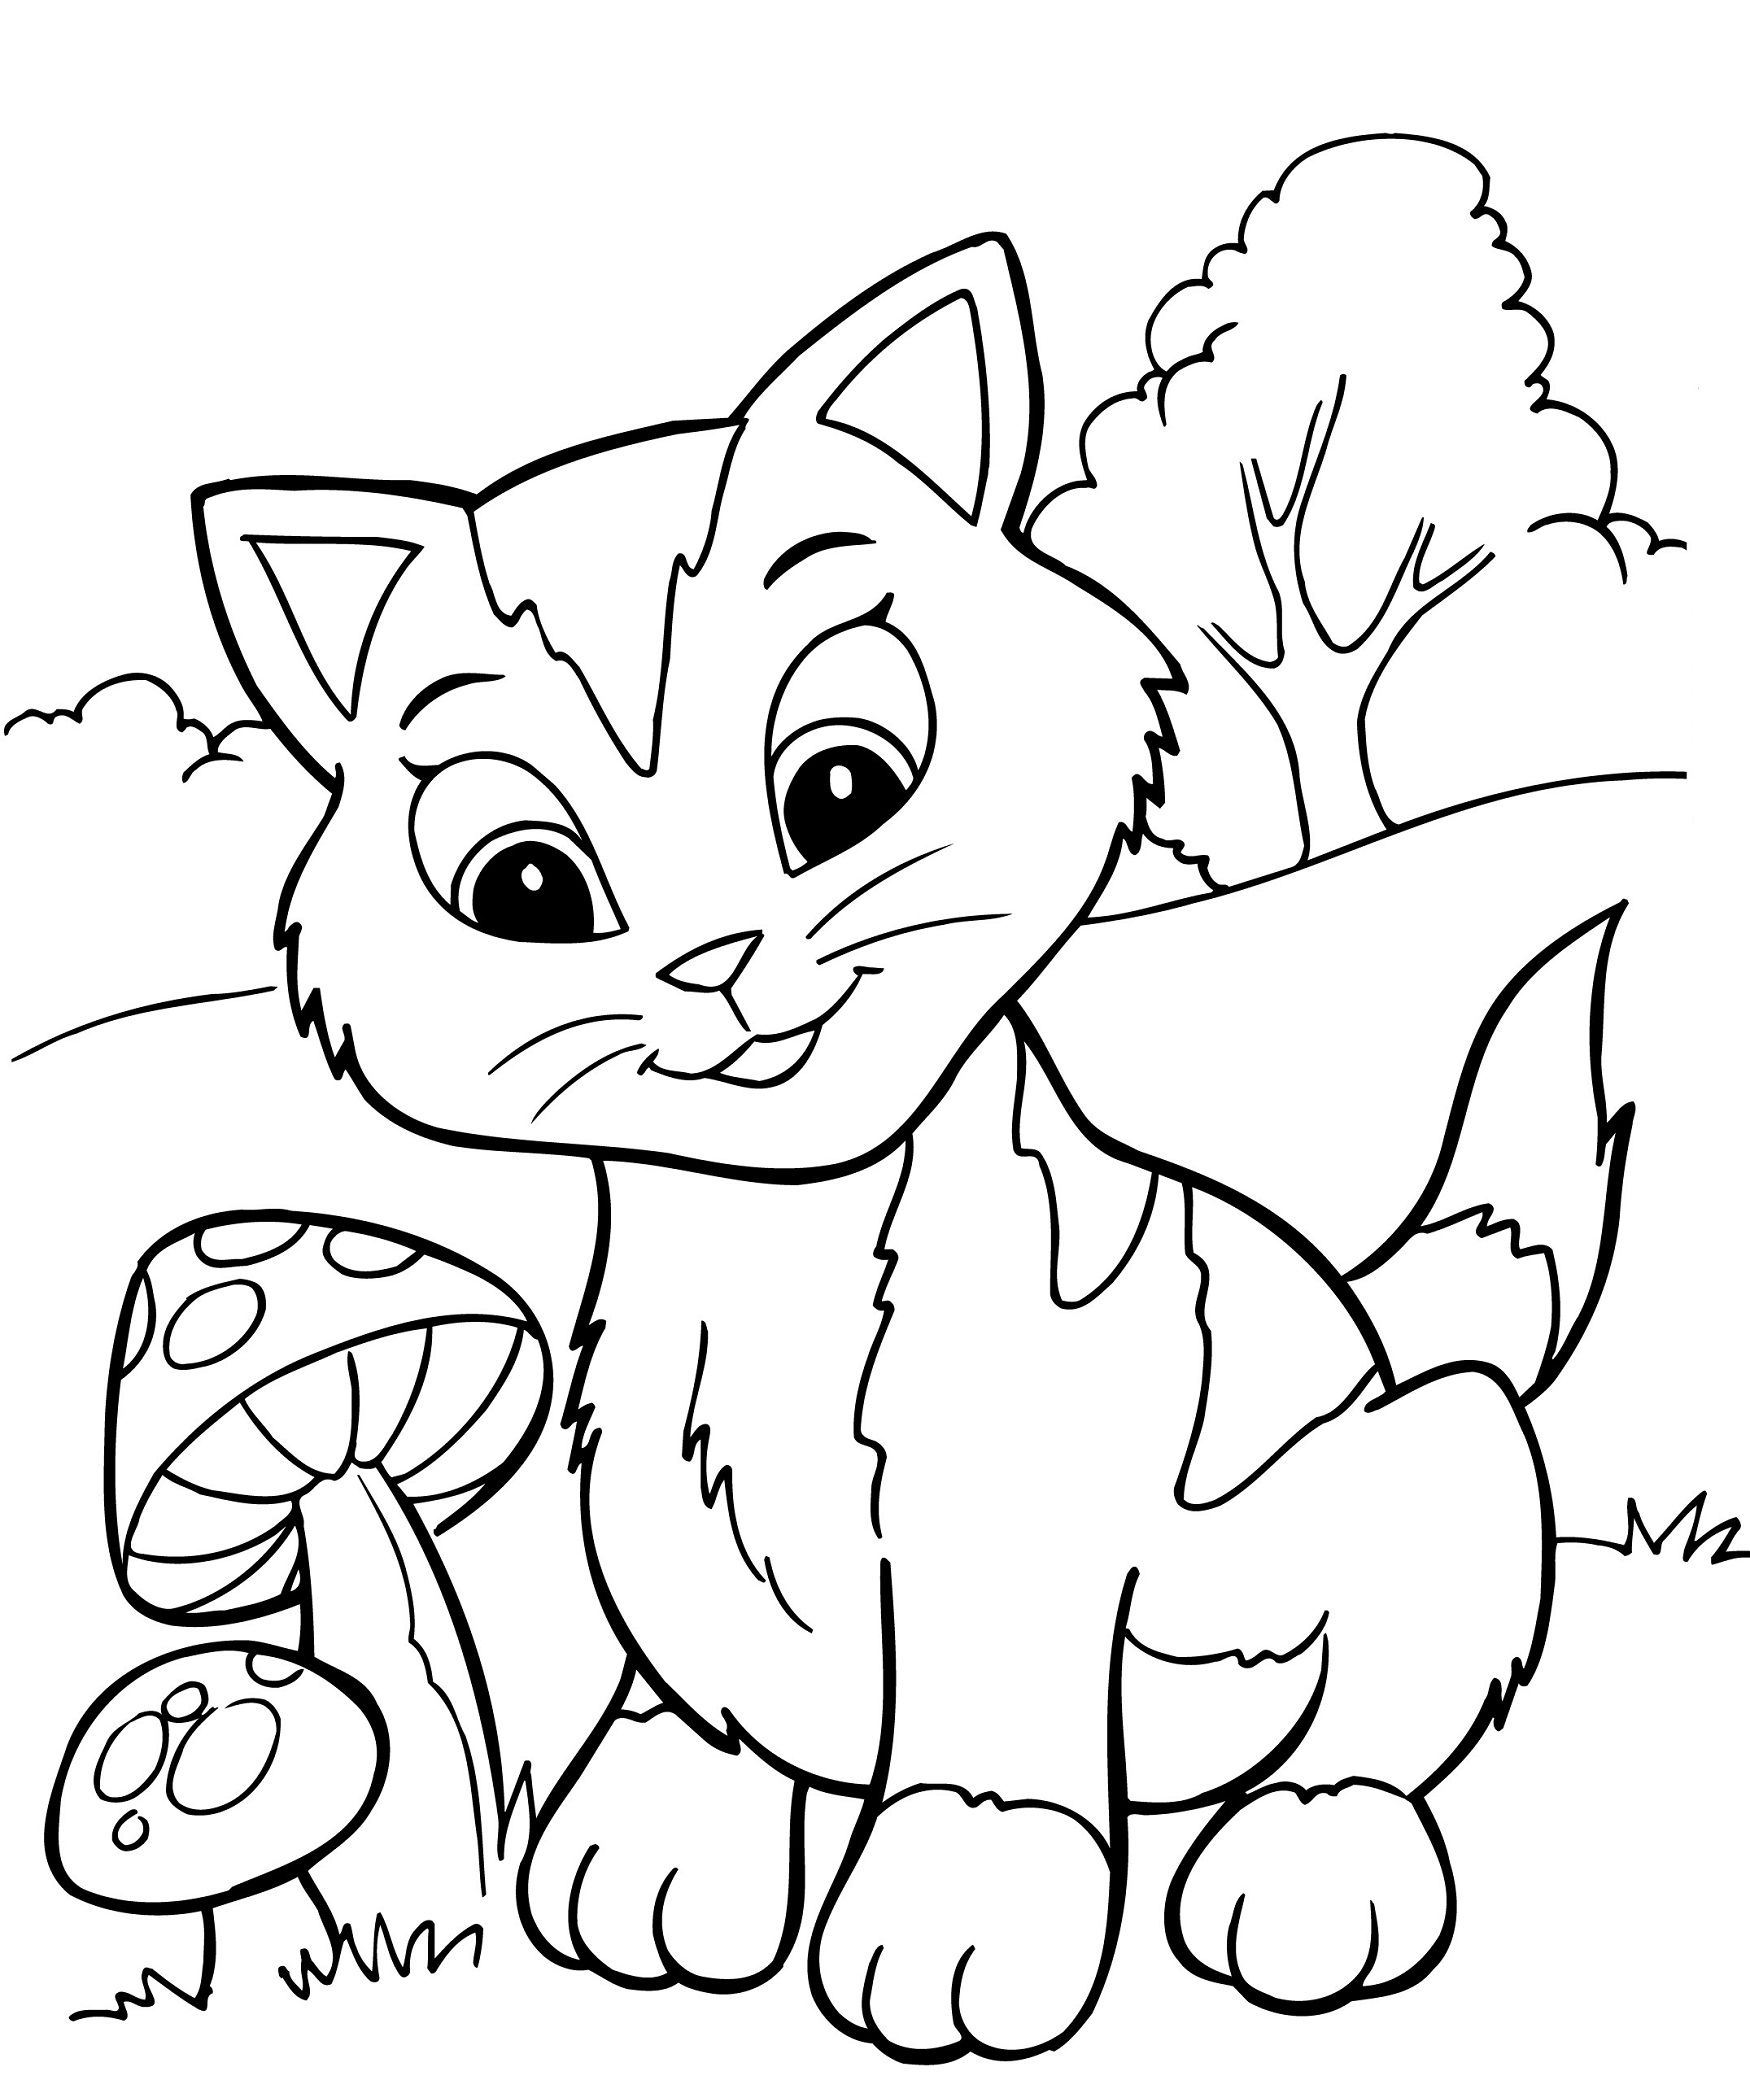 kitty pictures to color cool hello kitty coloring pages download and print for free kitty color pictures to